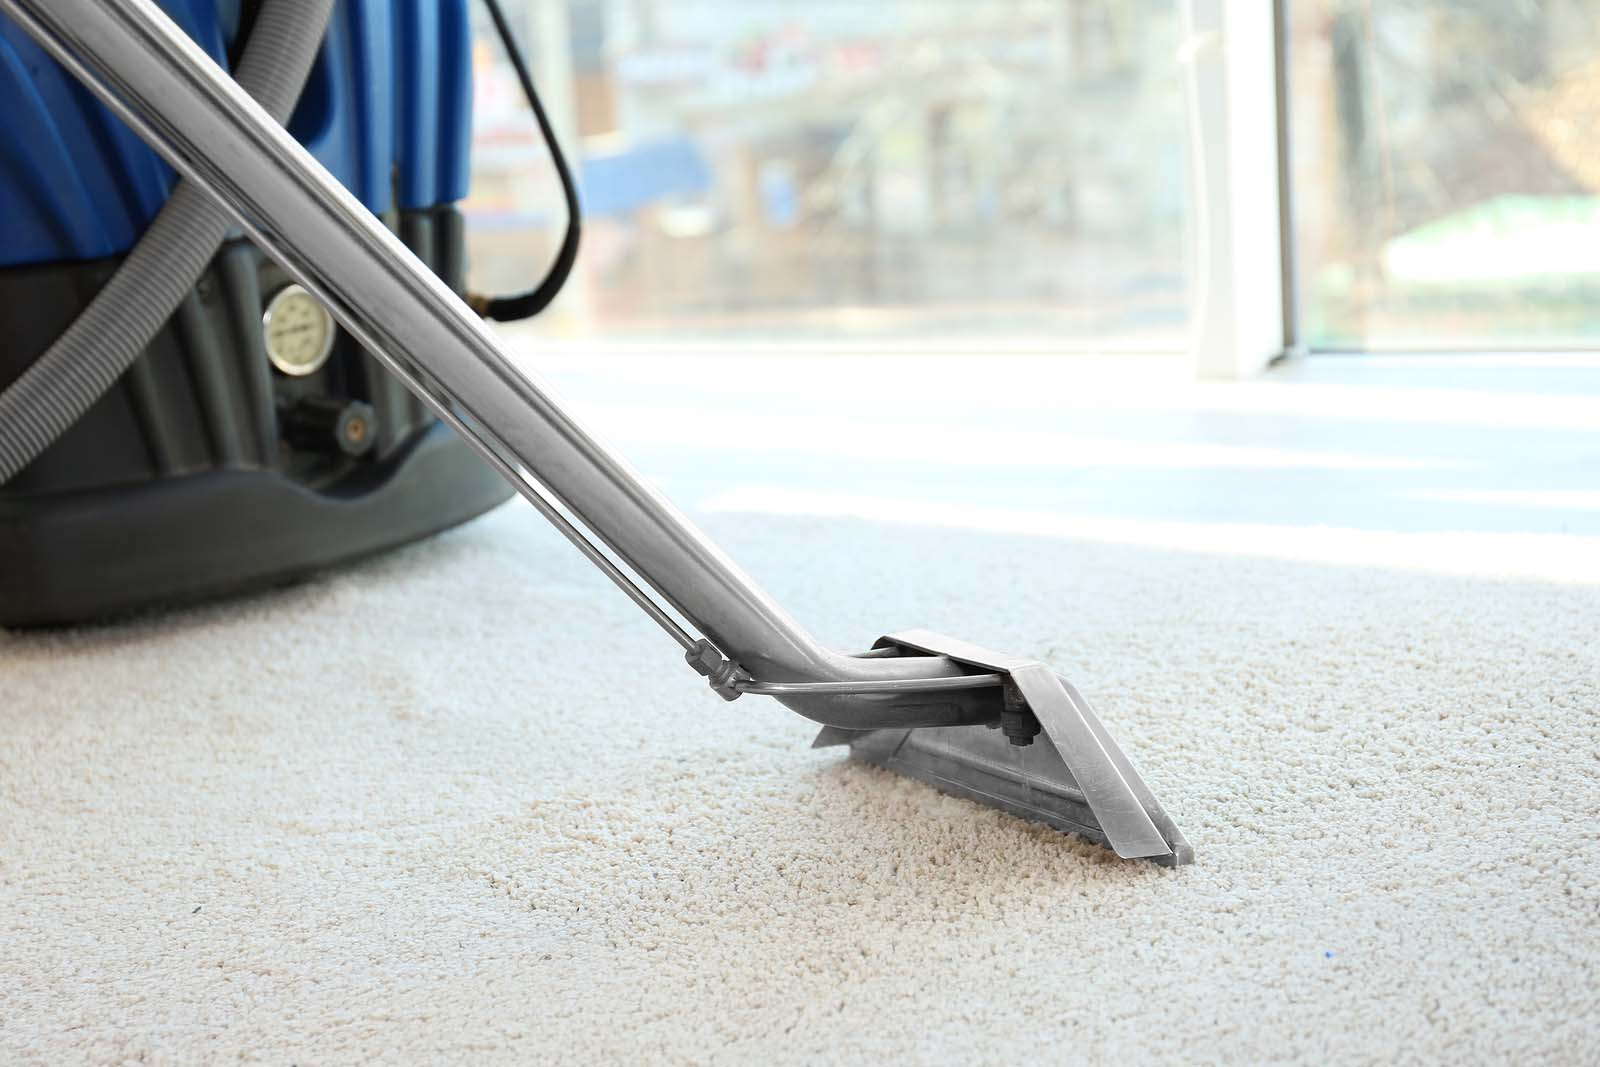 Carpet Cleaning Carpet Cleaning Castle Rock Co Carpet Cleaners Castle Rock Co